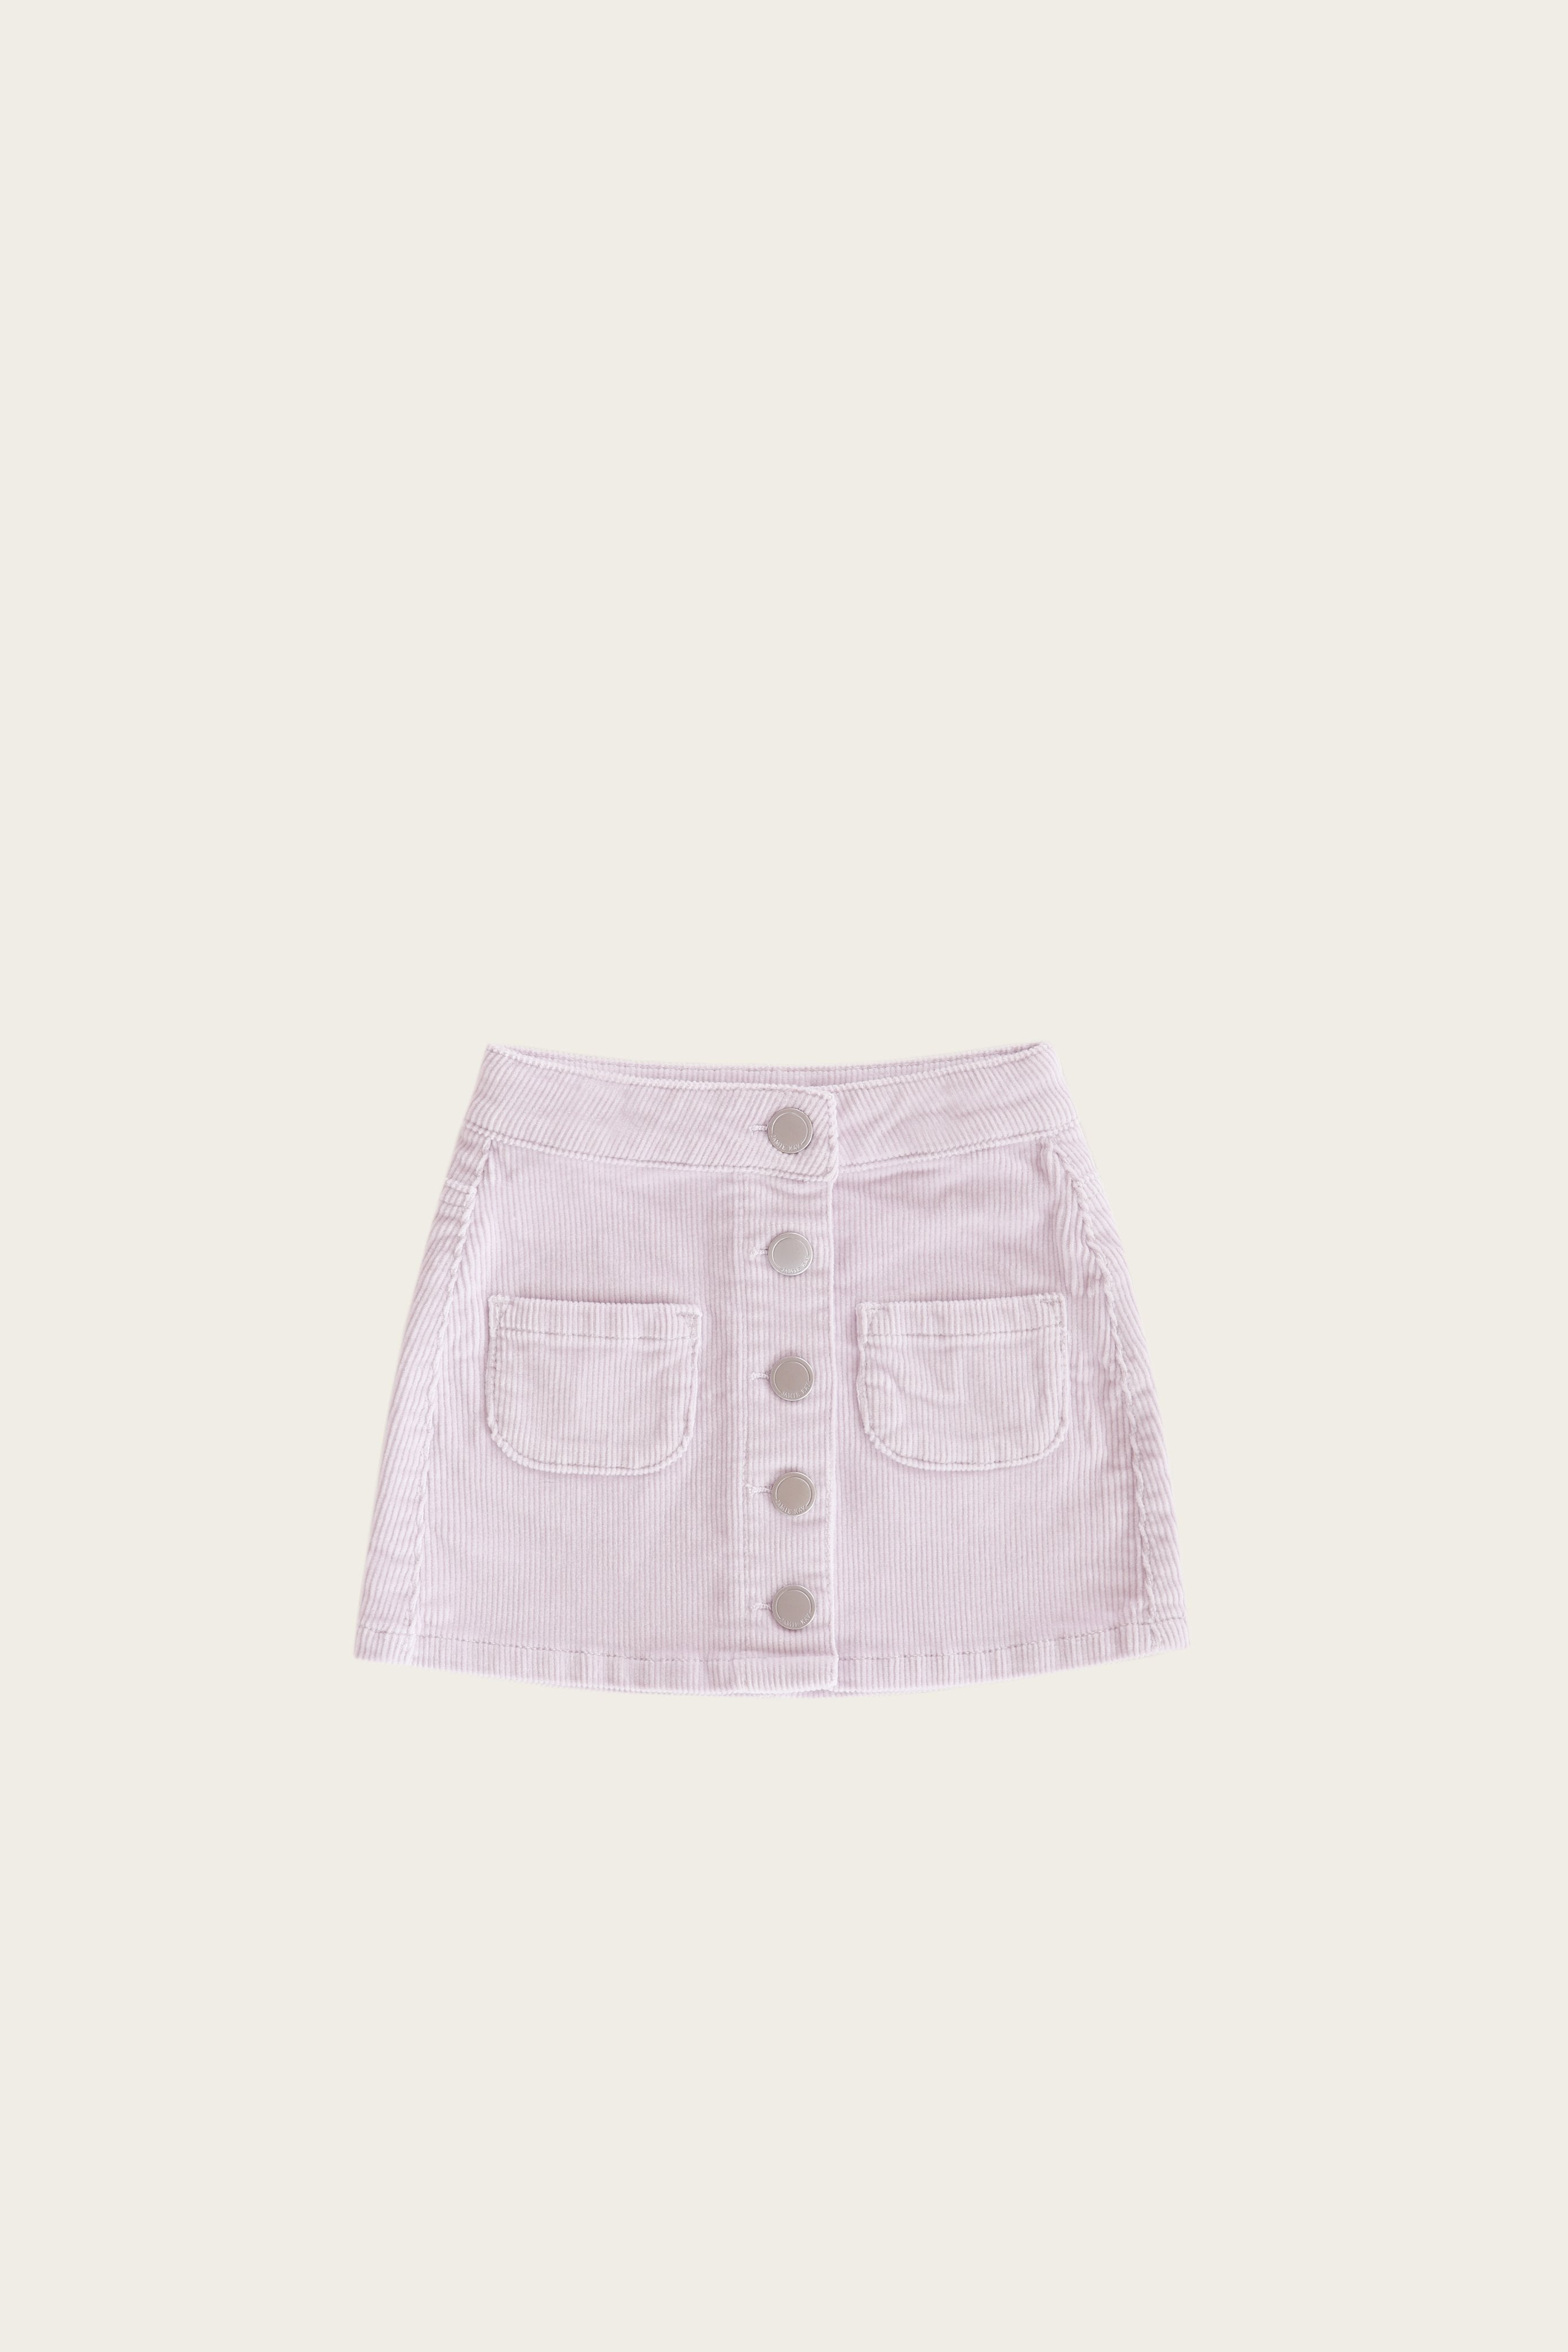 Ava Cord Skirt - Soft Lilac